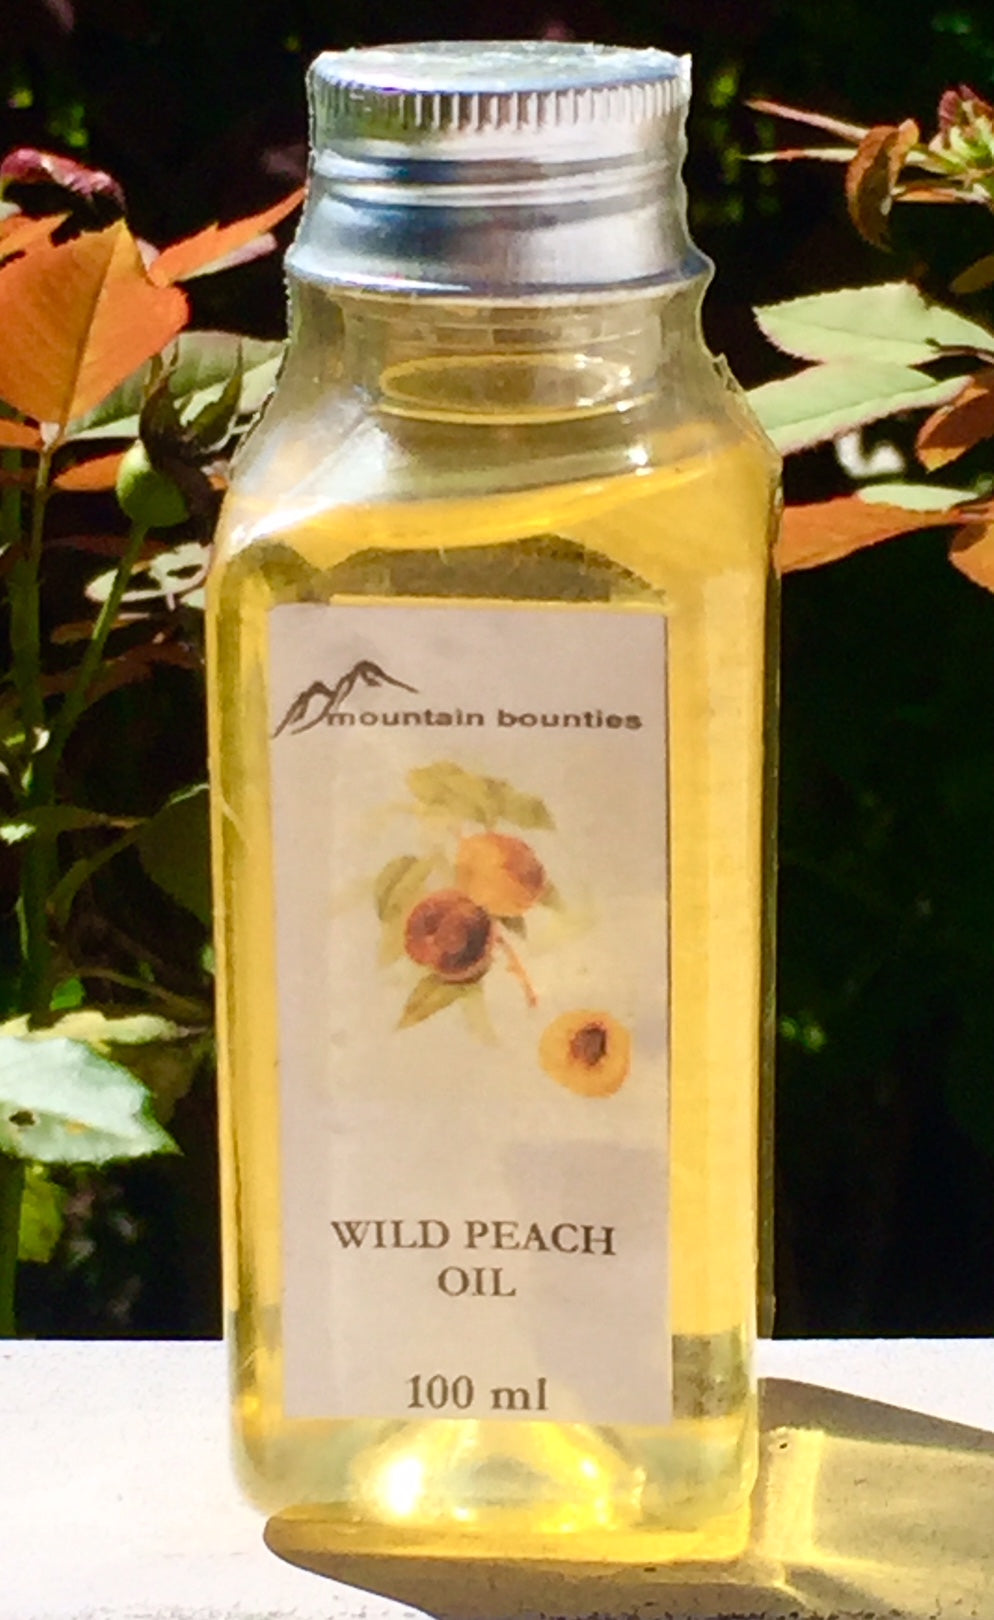 Wild Peach oil is an excellent softener and moisturizer for face, hands and hair. Well known therapeutic body massage oil. Recommended for prematurely aged, sensitive, inflamed and dry skin. Cold pressed oil from Peach kernels. Body Oil, 100% natural, handmade, Natural oils, Skin Care, Himachal Oils, Himalayan Salt, Mountain Bounties, Himalayan people Care, Essential oils, Cold Pressed oils, Moisturising oils, Moisturising creams